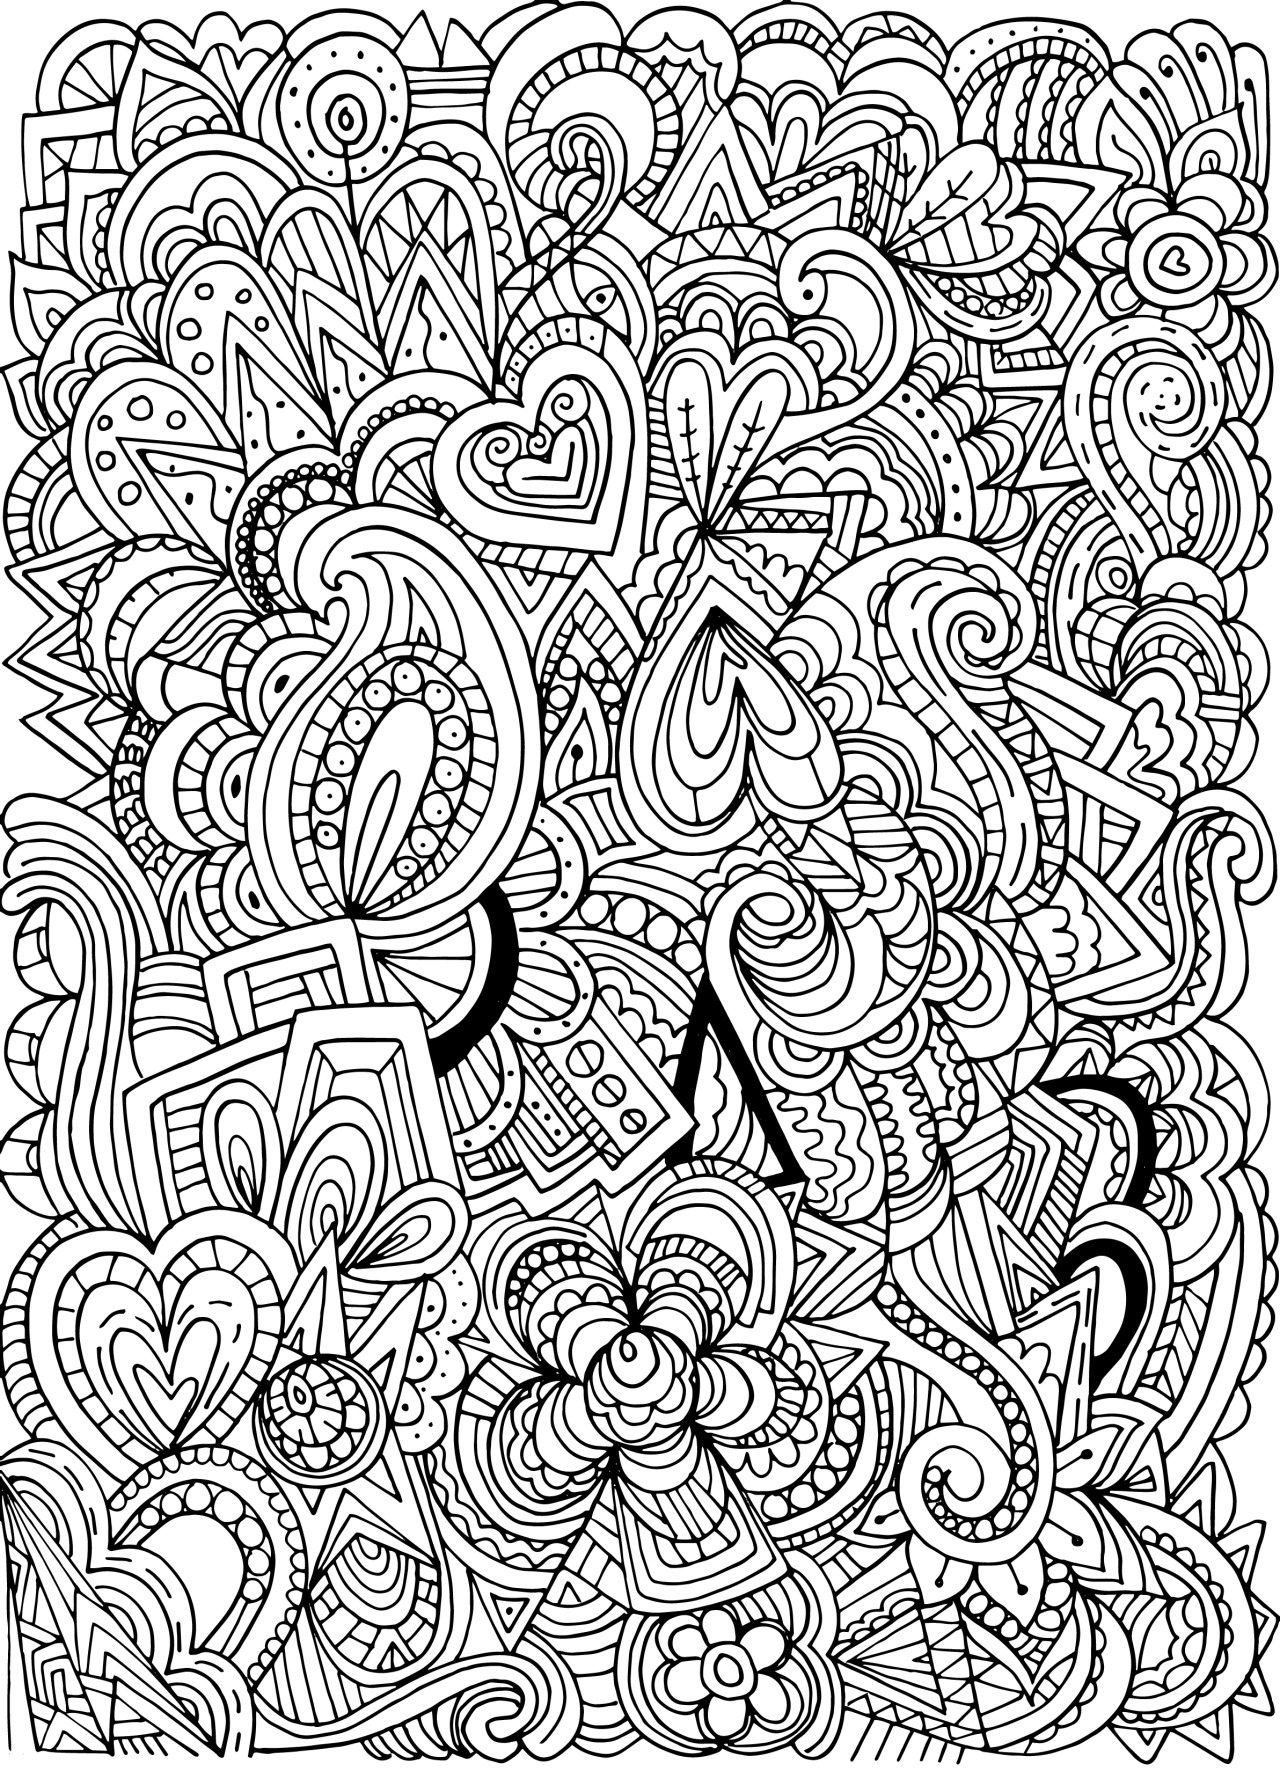 1280x1771 Tumblr Coloring Pages Teenagers Tumblr Coloring Pages